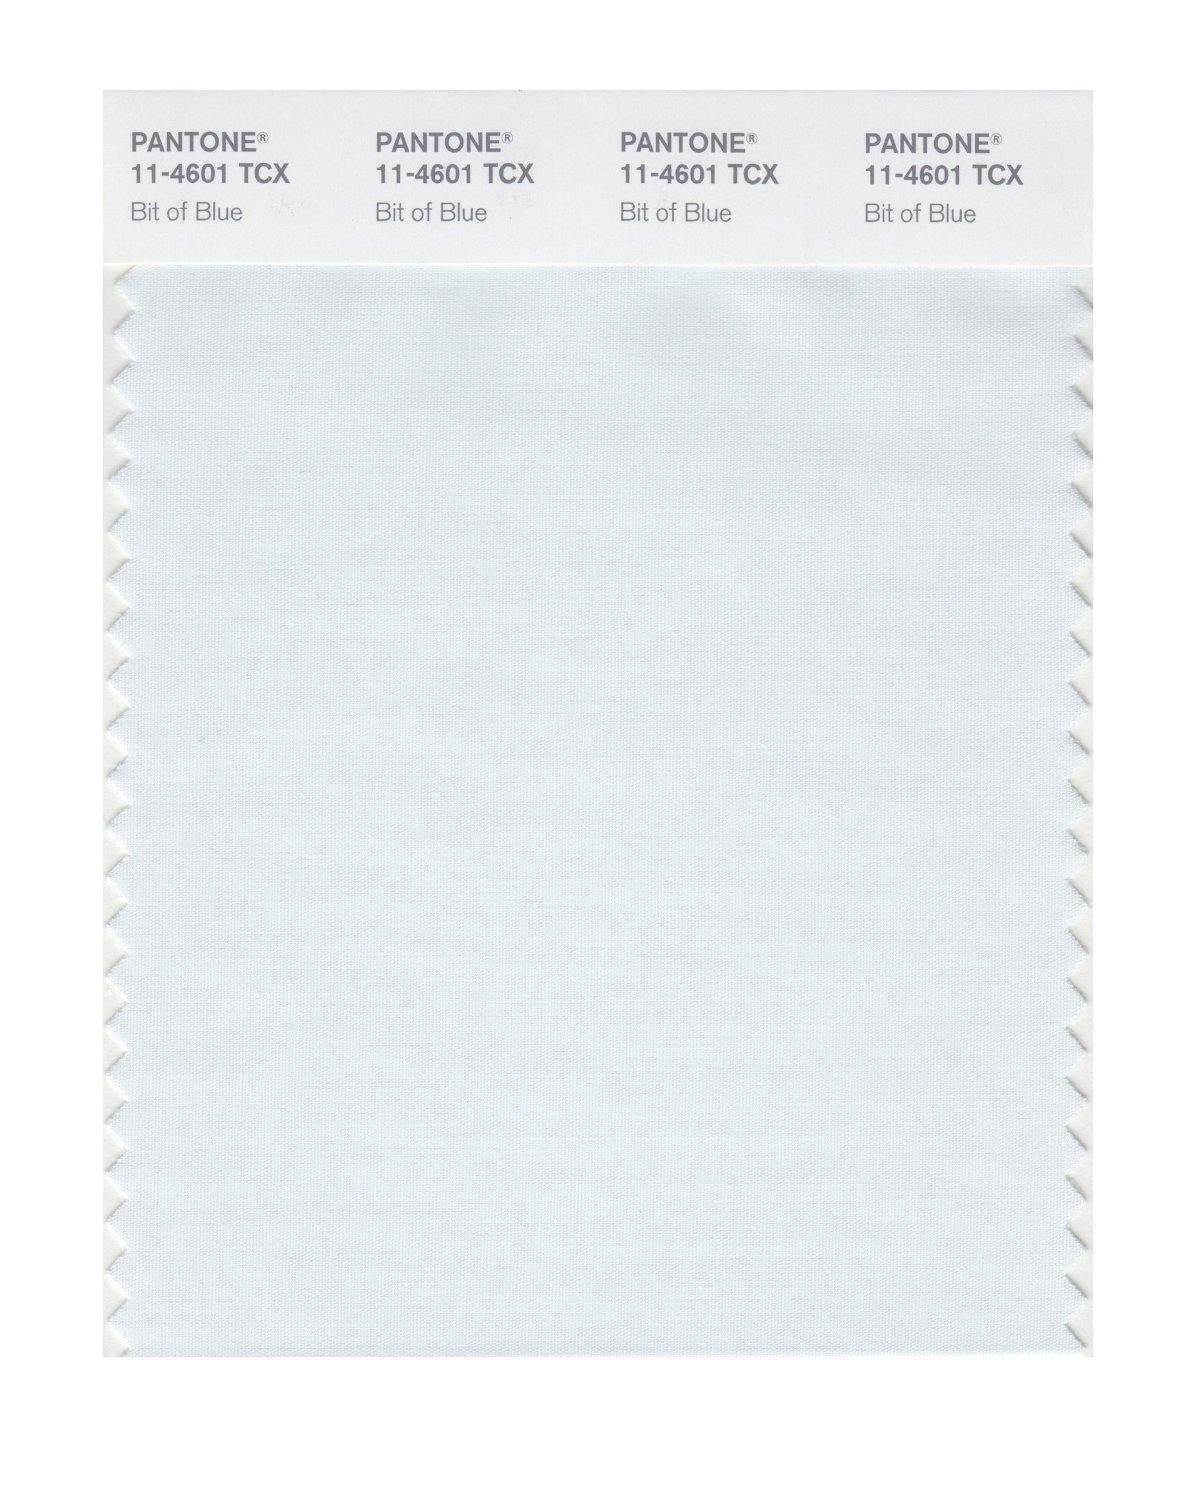 Pantone Smart Swatch 11-4601 Bit Of Blue